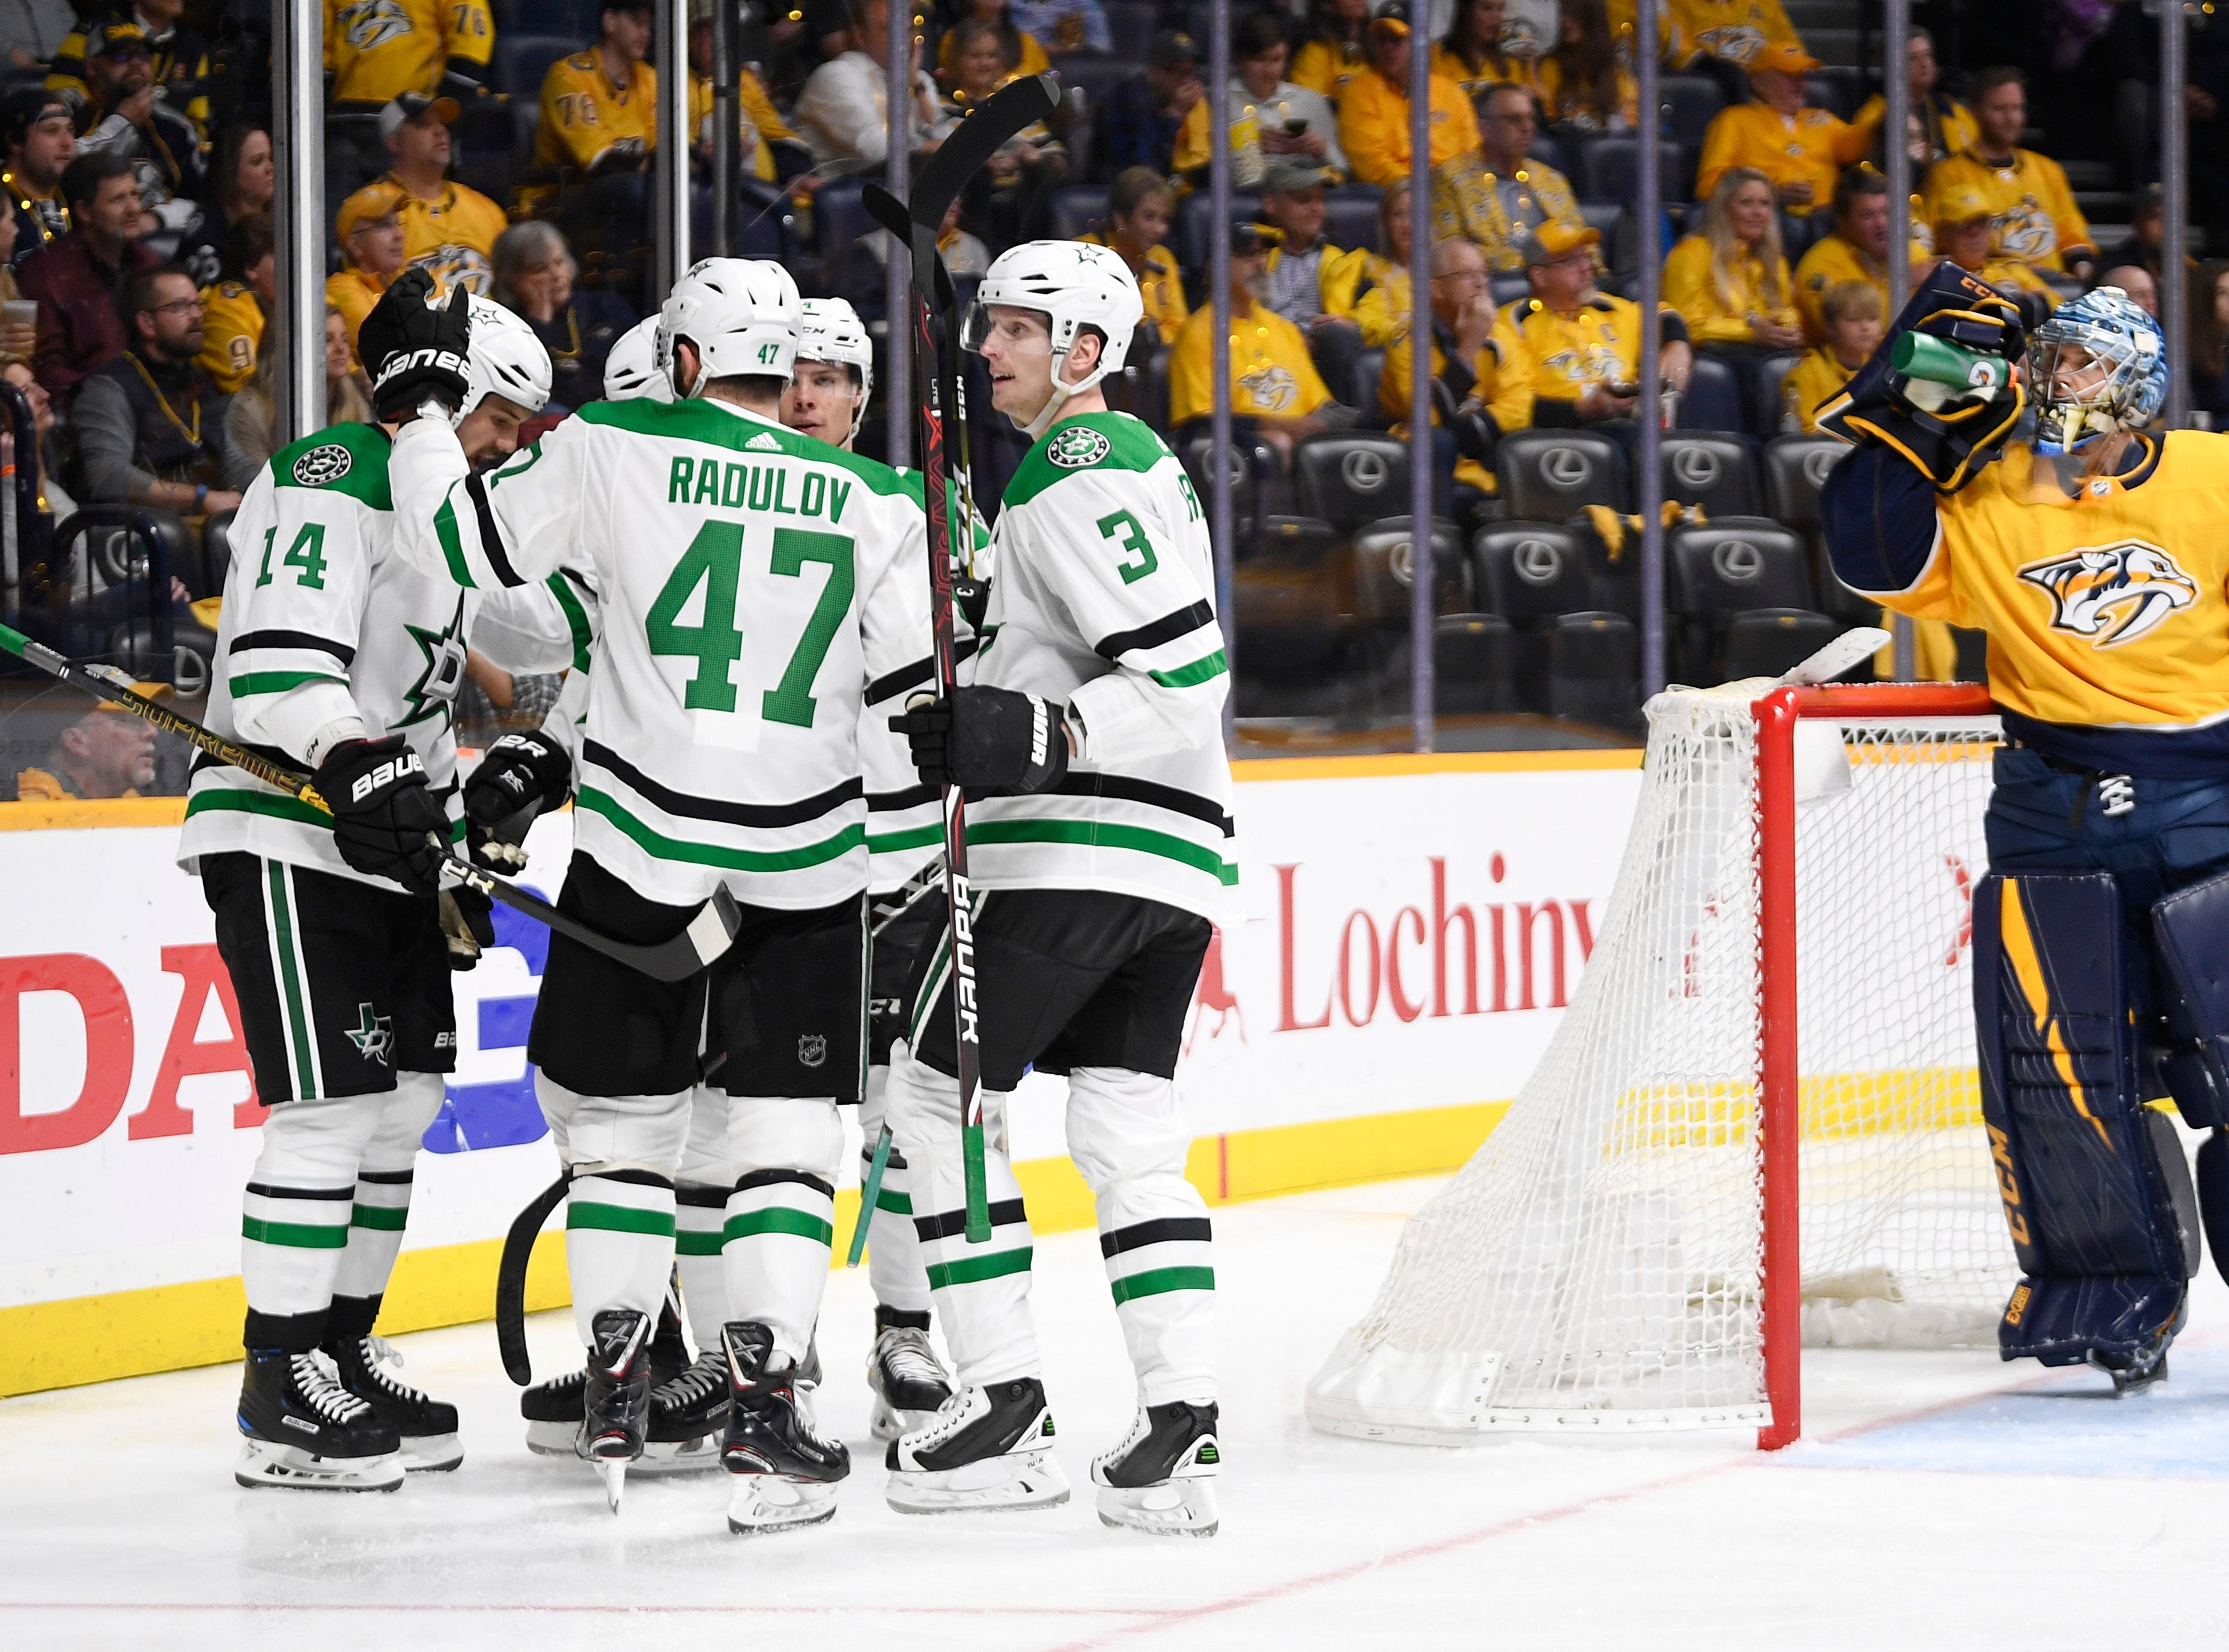 The Stars celebrate the goal by Dallas Stars left wing Jamie Benn (14) as Nashville Predators goaltender Pekka Rinne (35) takes a drink during the second period of the divisional semifinal game at Bridgestone Arena in Nashville, Tenn., Saturday, April 13, 2019.